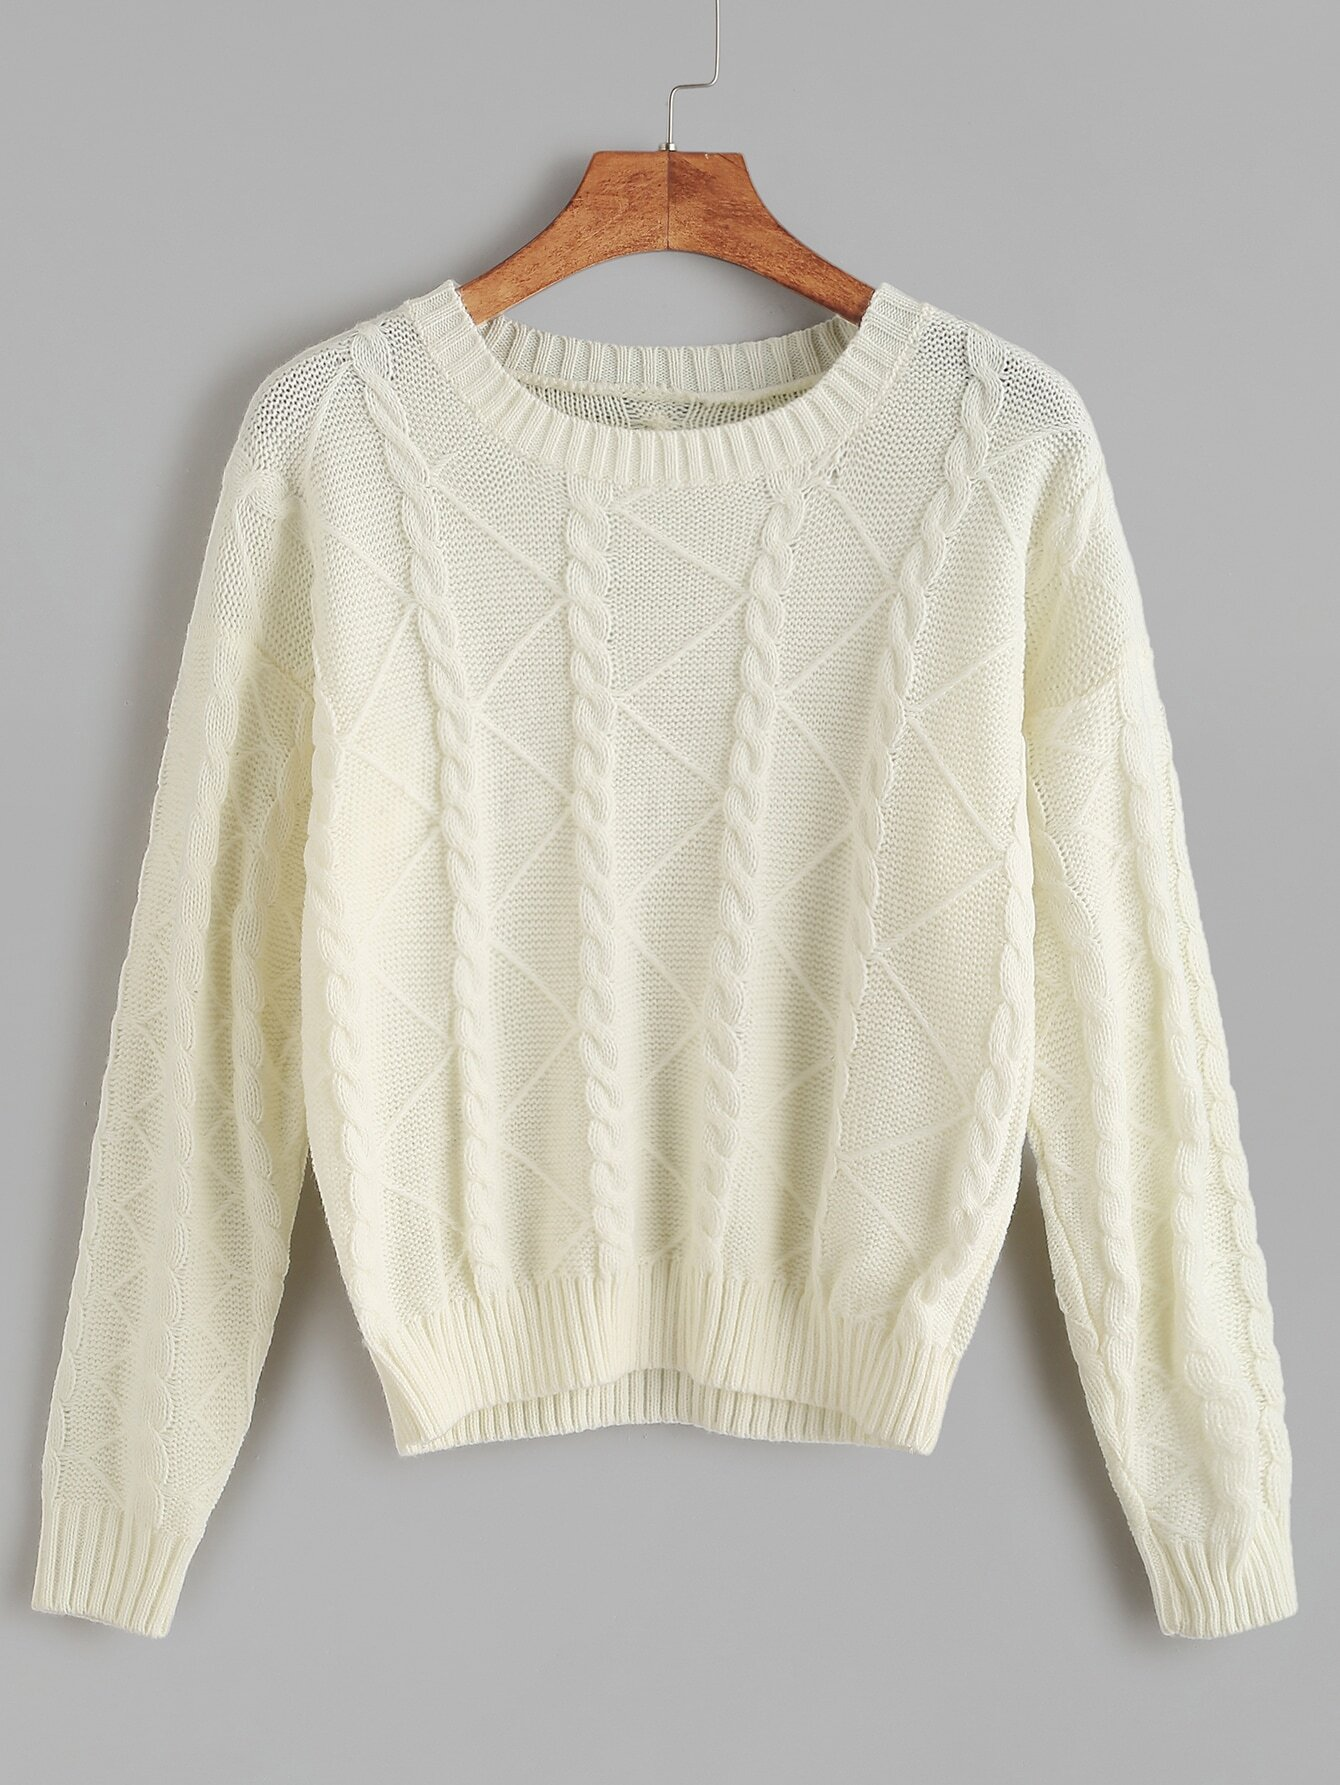 Knitting Sweaters In The Round : White round neck cable knit sweaterfor women romwe